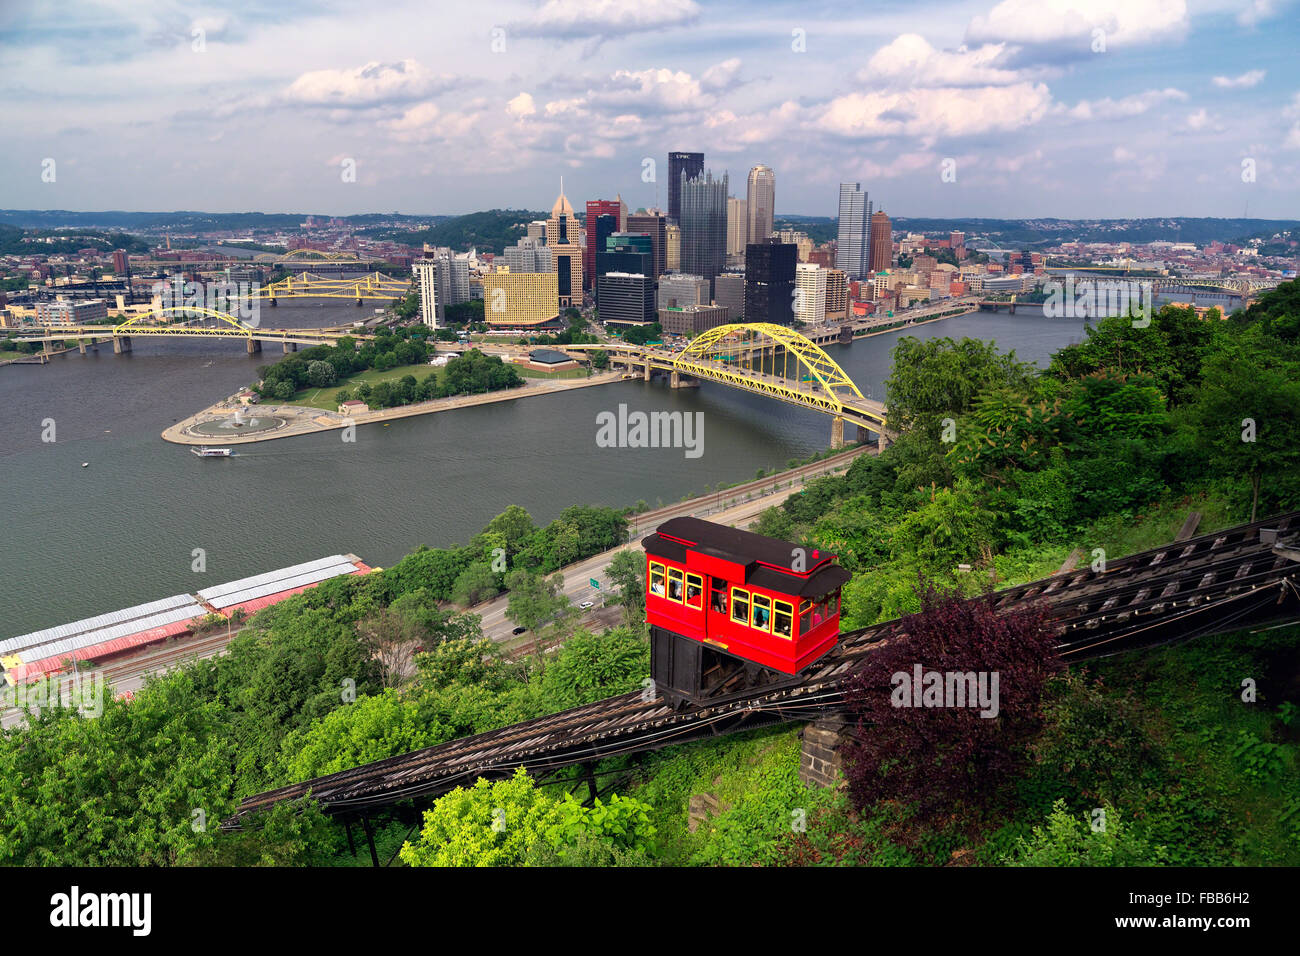 Red Funicular  Car on a Hillside with Pittsburgh Downtown in the Background, Duquesne Incline, Mt Washington, Pittsburgh - Stock Image